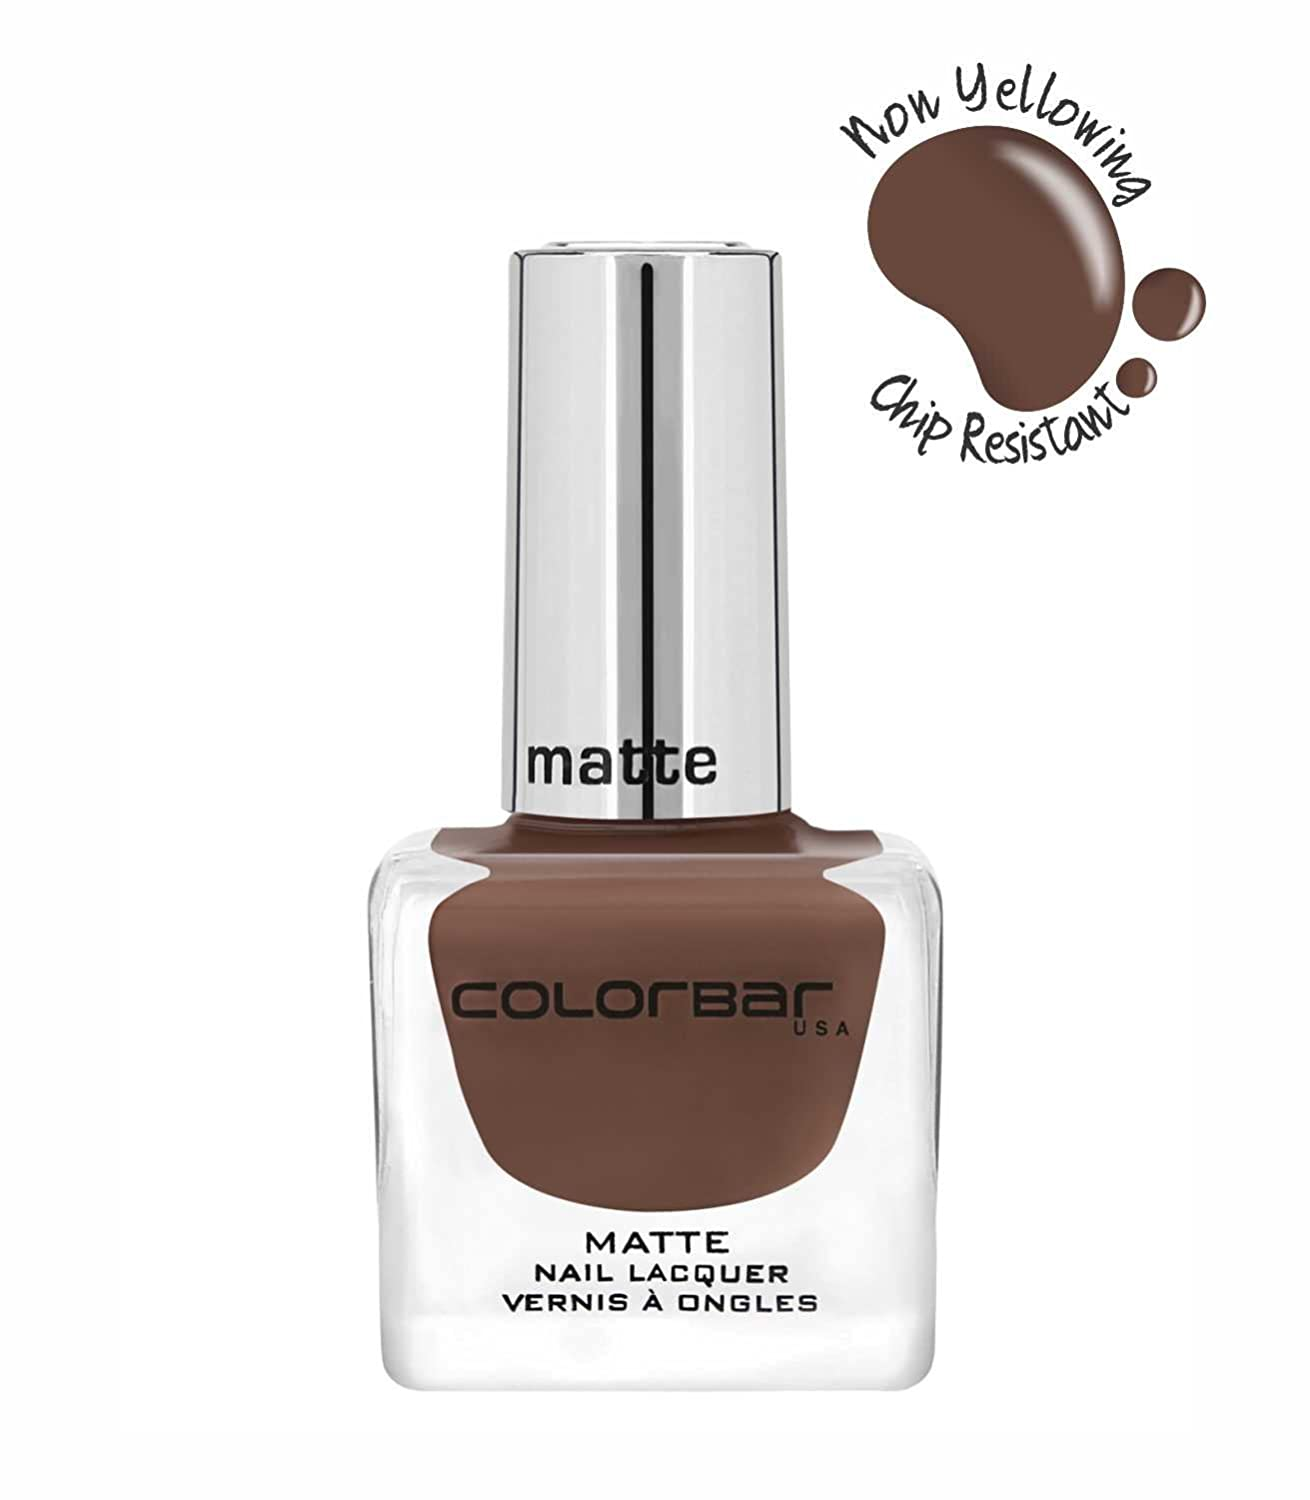 Buy Colorbar CMN005 Matte Nail Lacquer, Brown, 12ml Online at Low ...